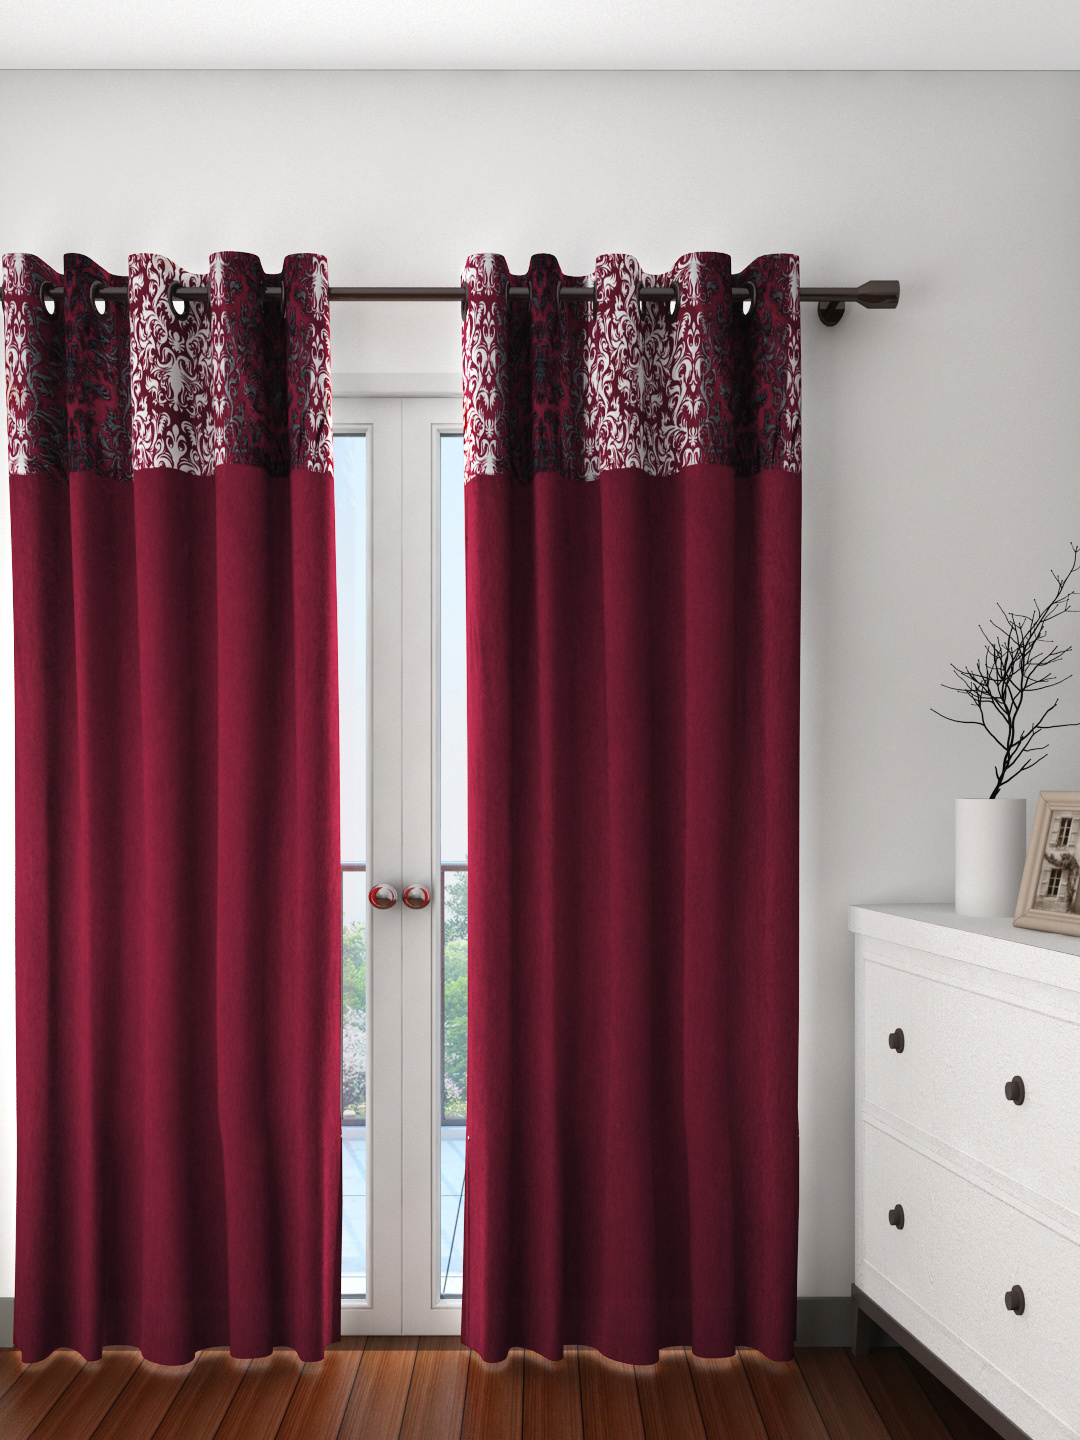 11467700288125-fashion-string-set-of-2-maroon-door-curtains-1811467700287890-1